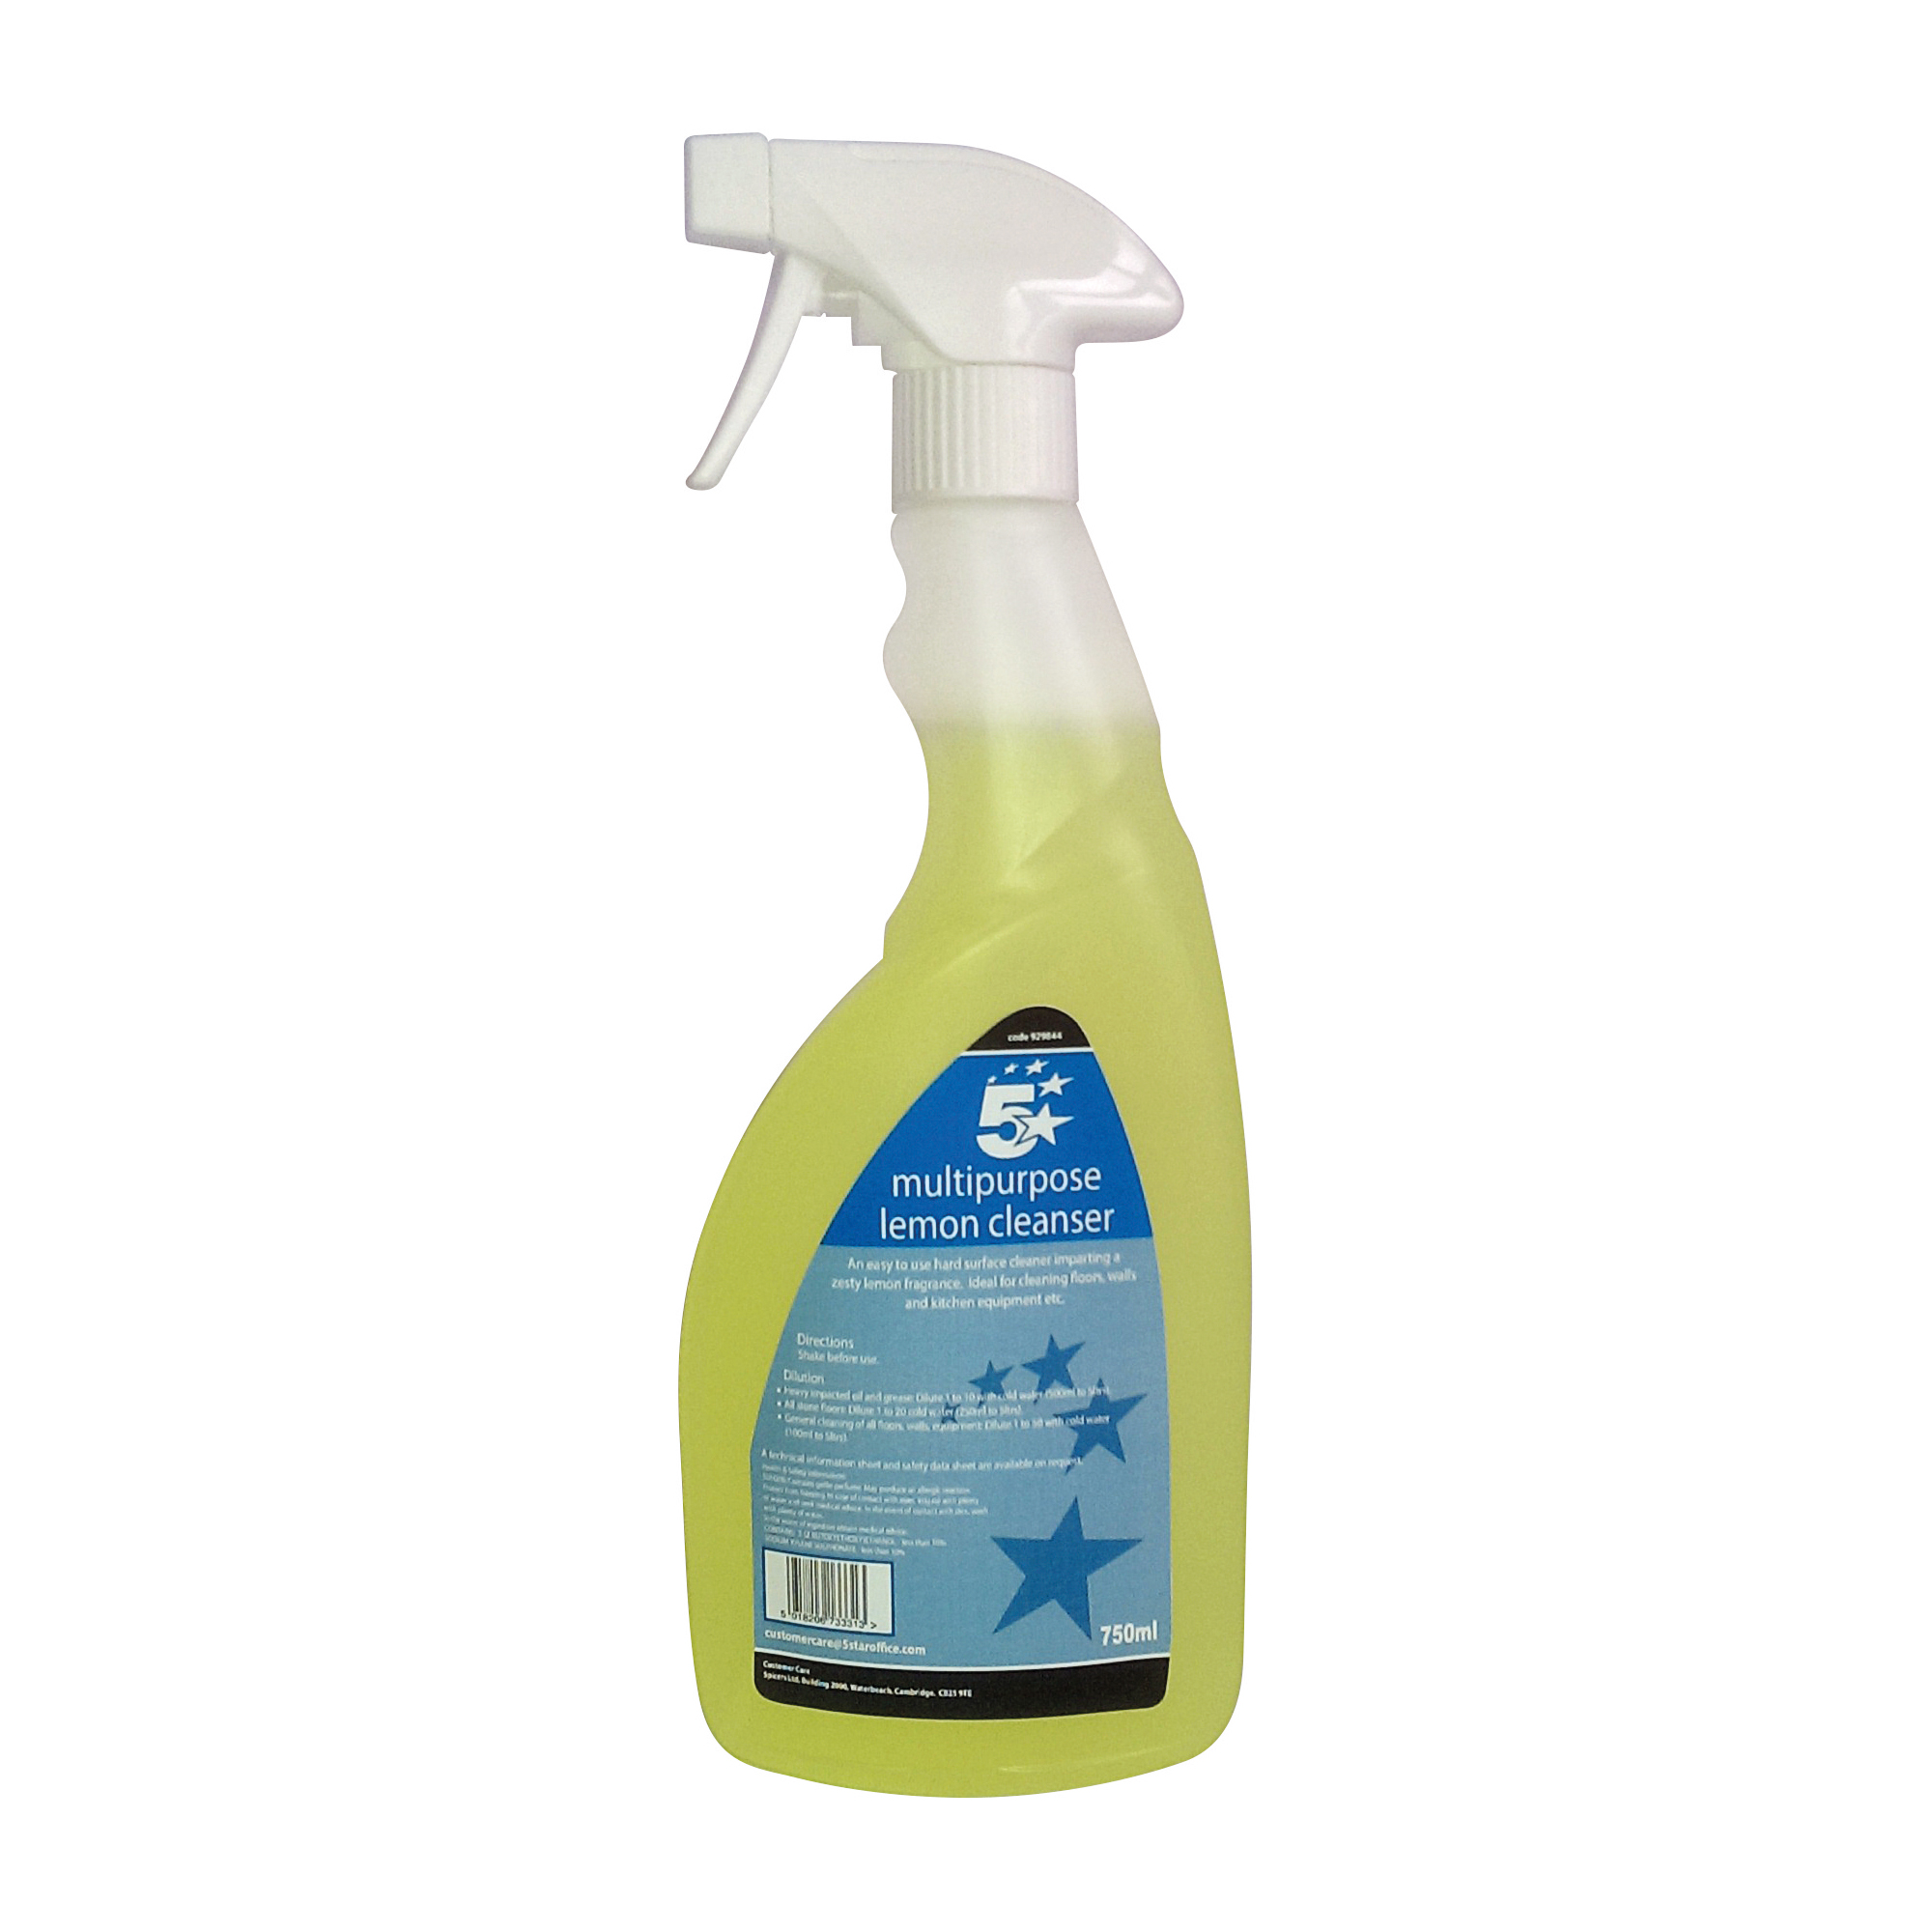 Cleaning Chemicals 5 Star Facilities Ready-to-use Multi-purpose Cleaner 750ml